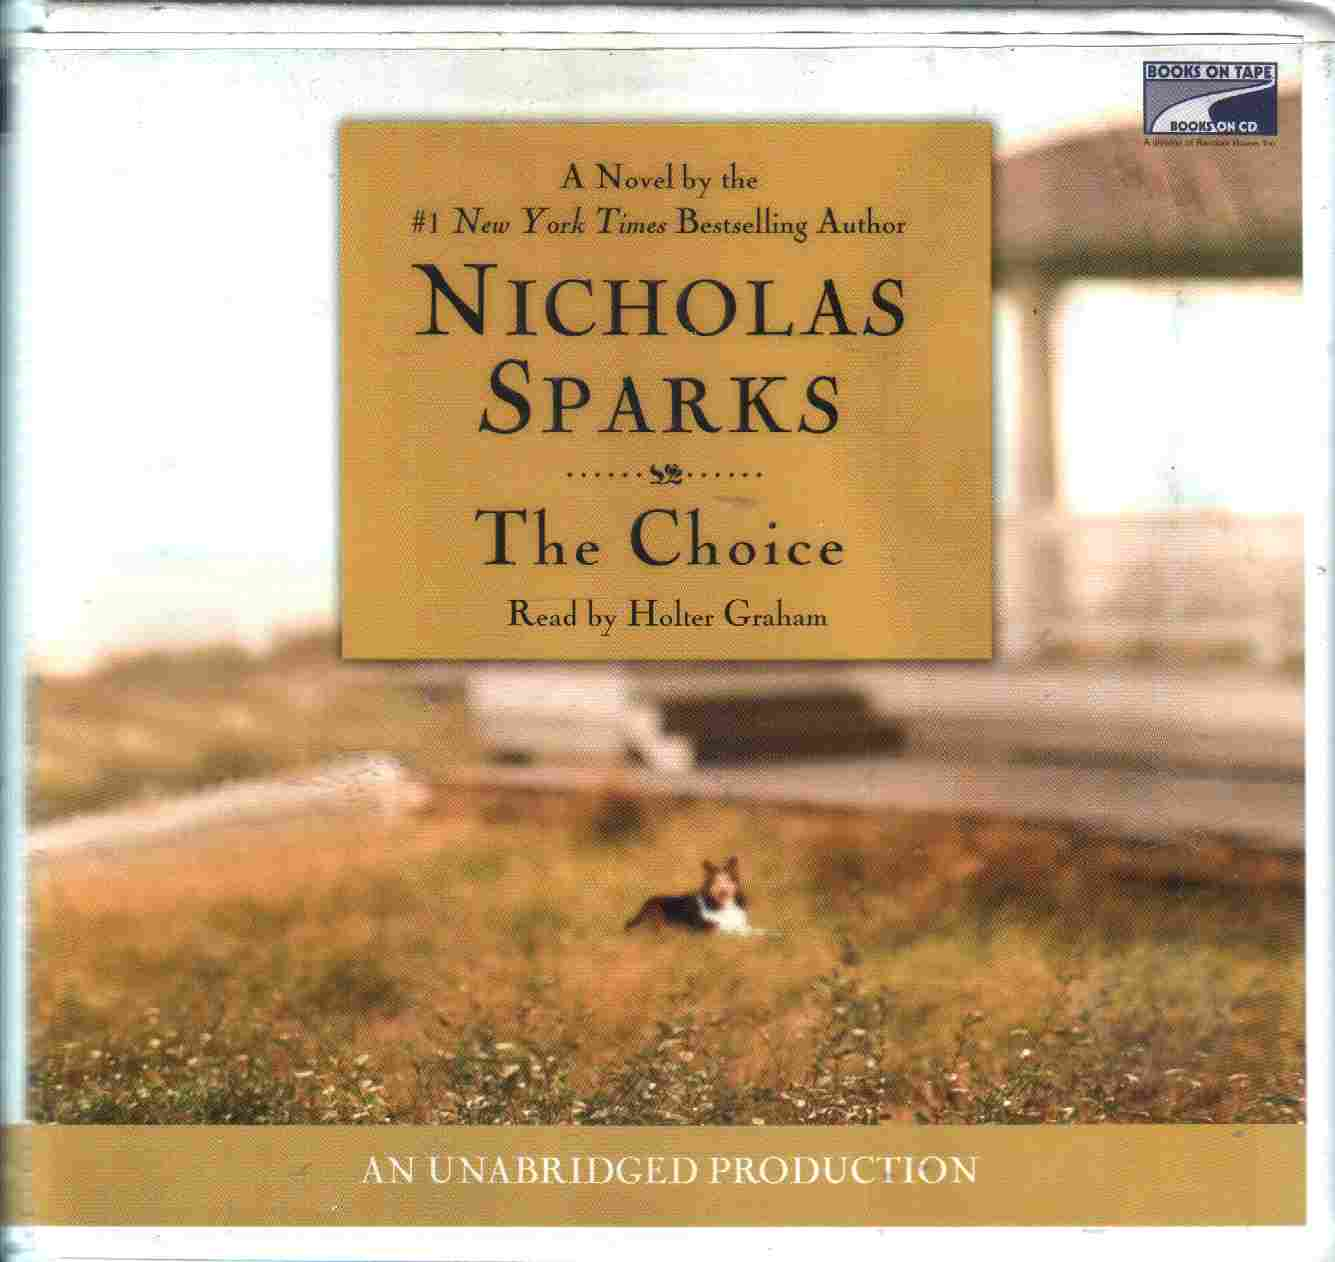 the choice nicholas sparks Thanks for the memories the choice little white lies (of love & life) by cecelia ahern, nicholas sparks, bernadette strachan' and a great selection of similar used, new and collectible books available now at abebookscom.